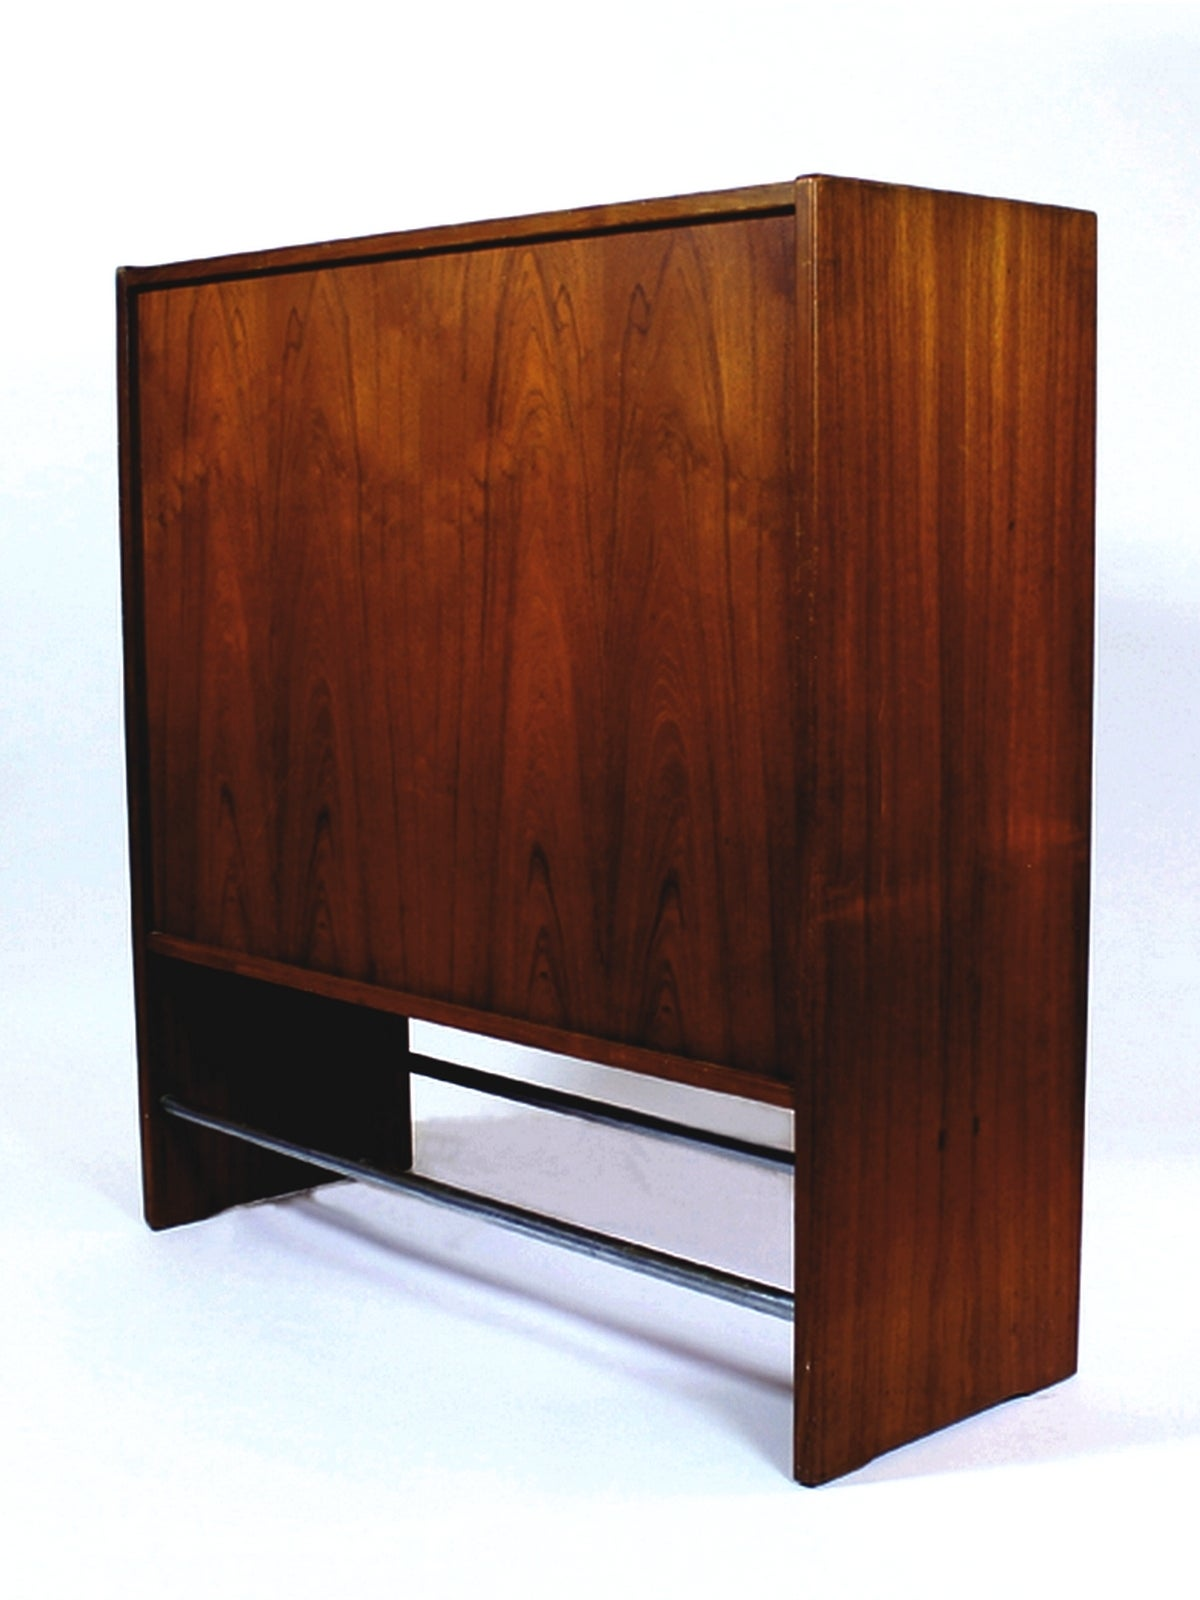 Original Danish rosewood dry bar designed by Erik Buch (1923-1982).  The outside of the bar is made from rosewood with a very nice grain, and the inside is partly in rosewood and the rest in nice contrasting grey-blue coated panel with round housing